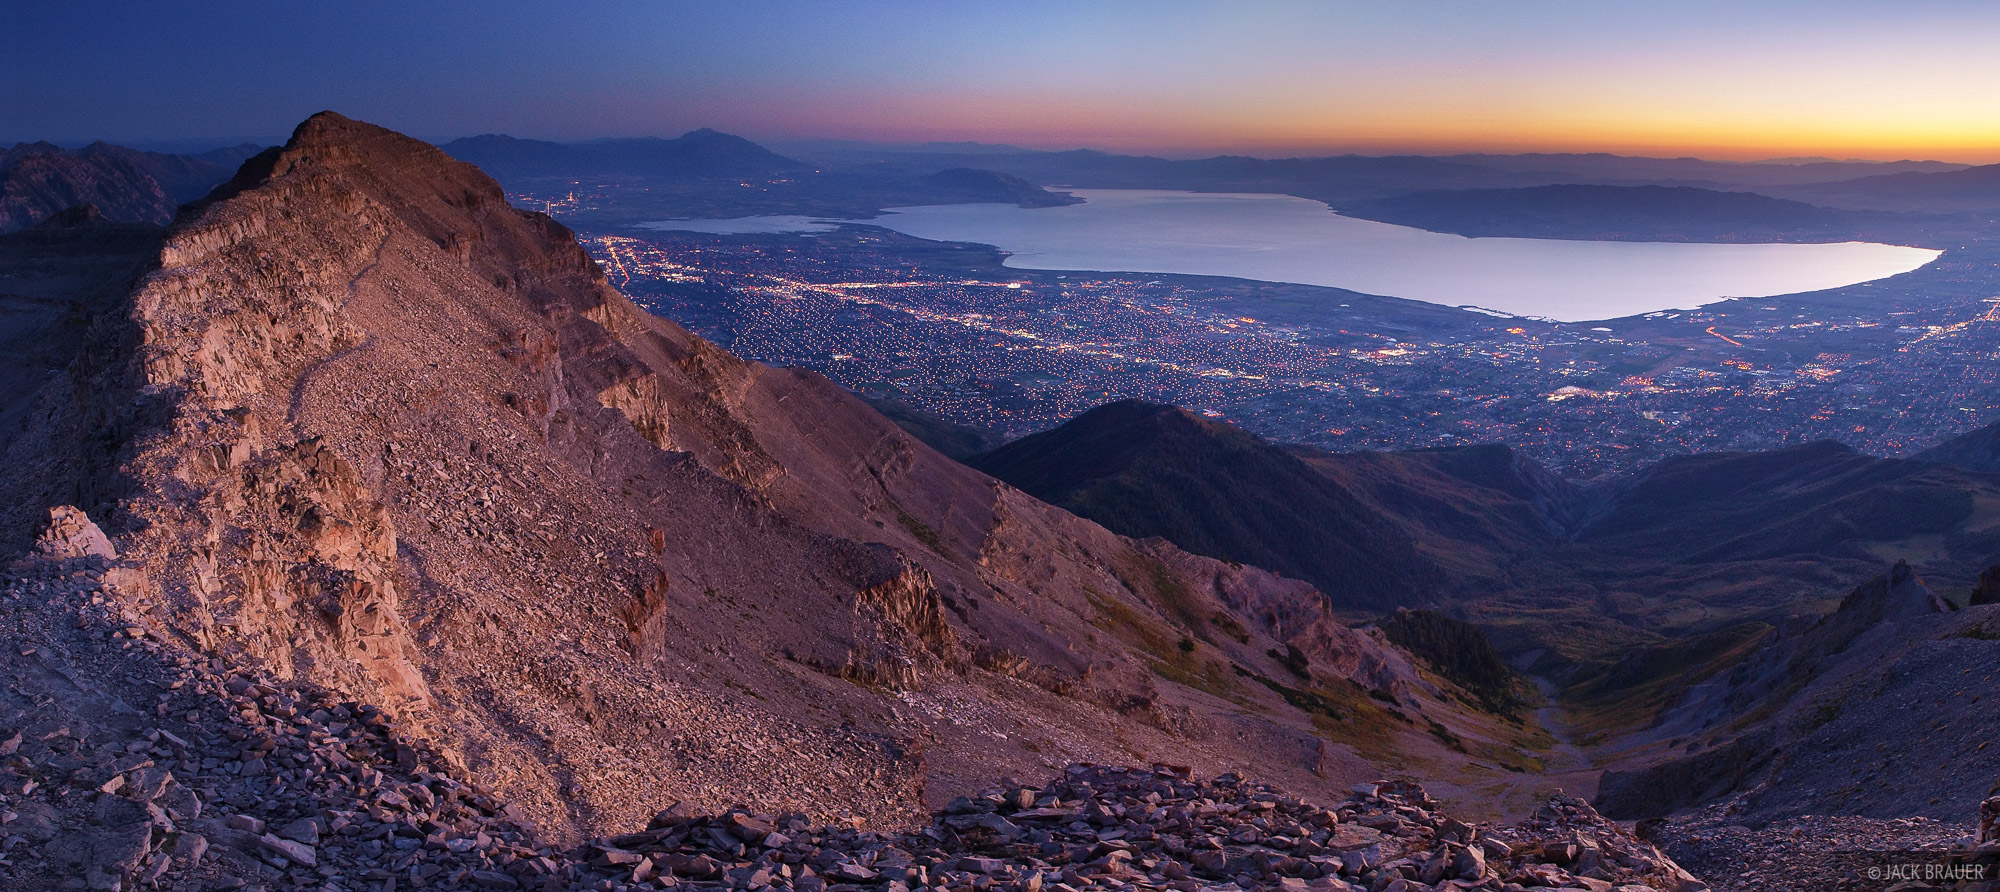 Dusk panorama of Utah Lake and the city lights Provo, Utah, as seen from near the summit of Mount Timpanogos, 7,000 feet higher...